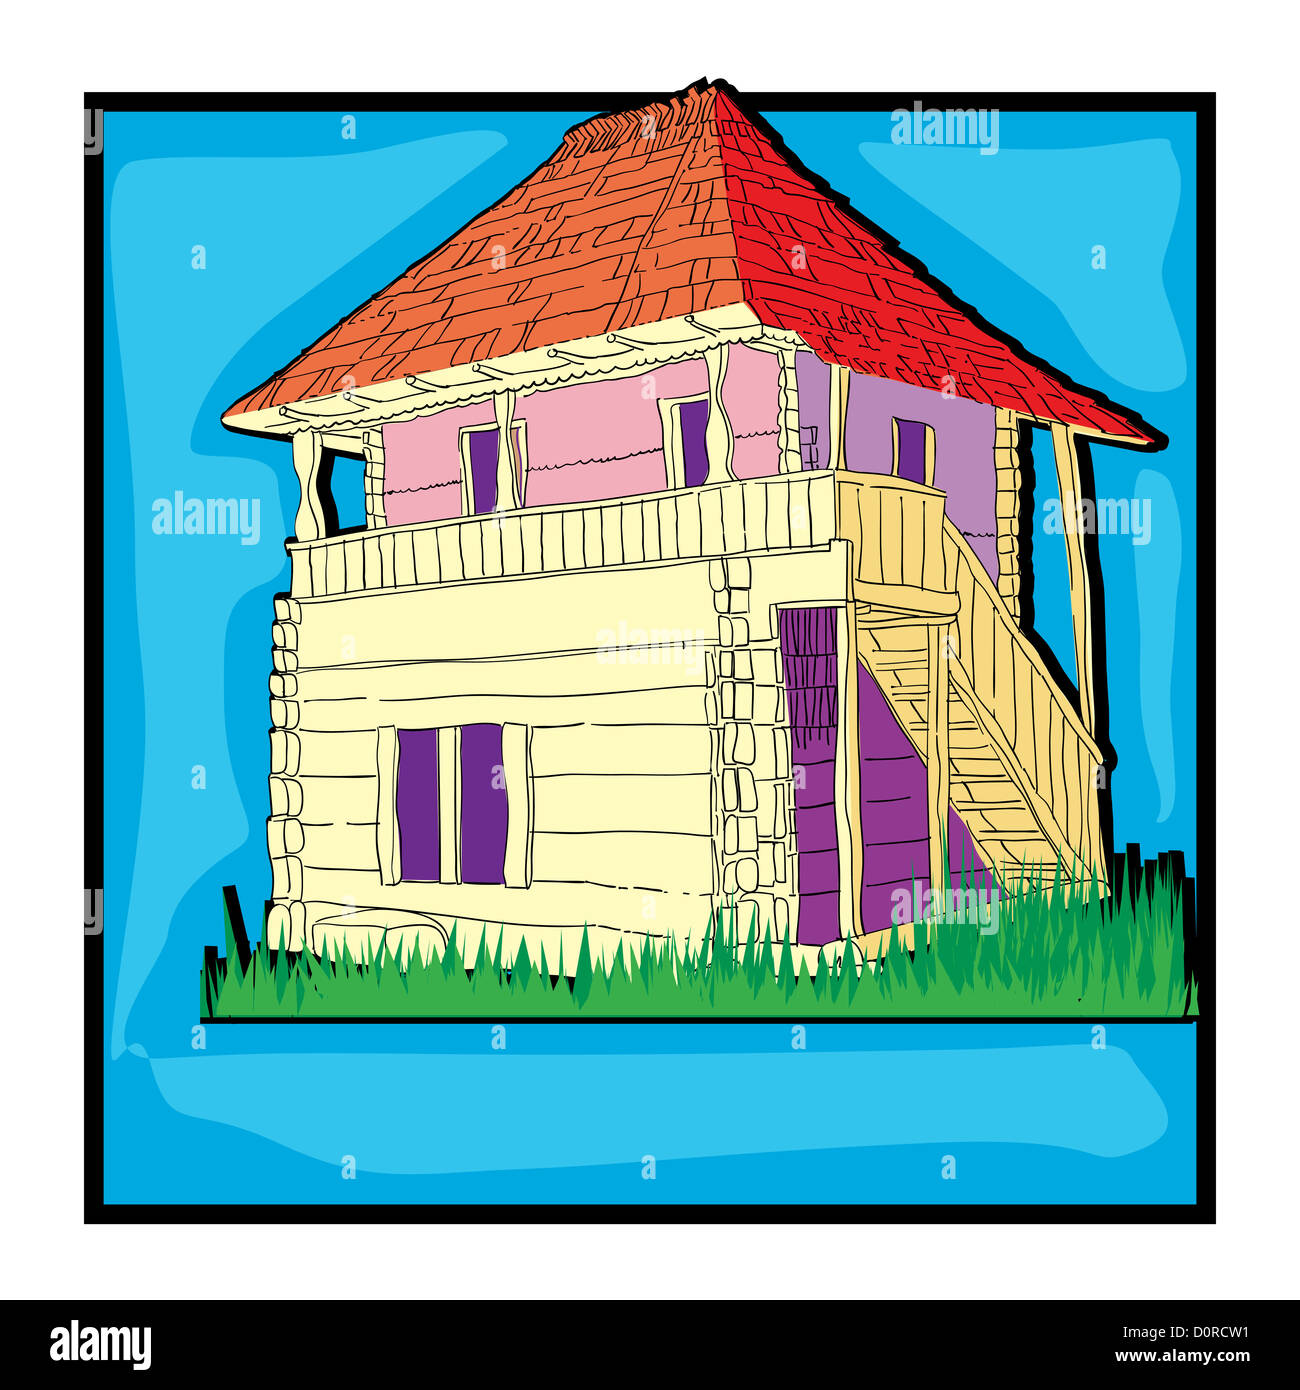 country house clip art - Stock Image